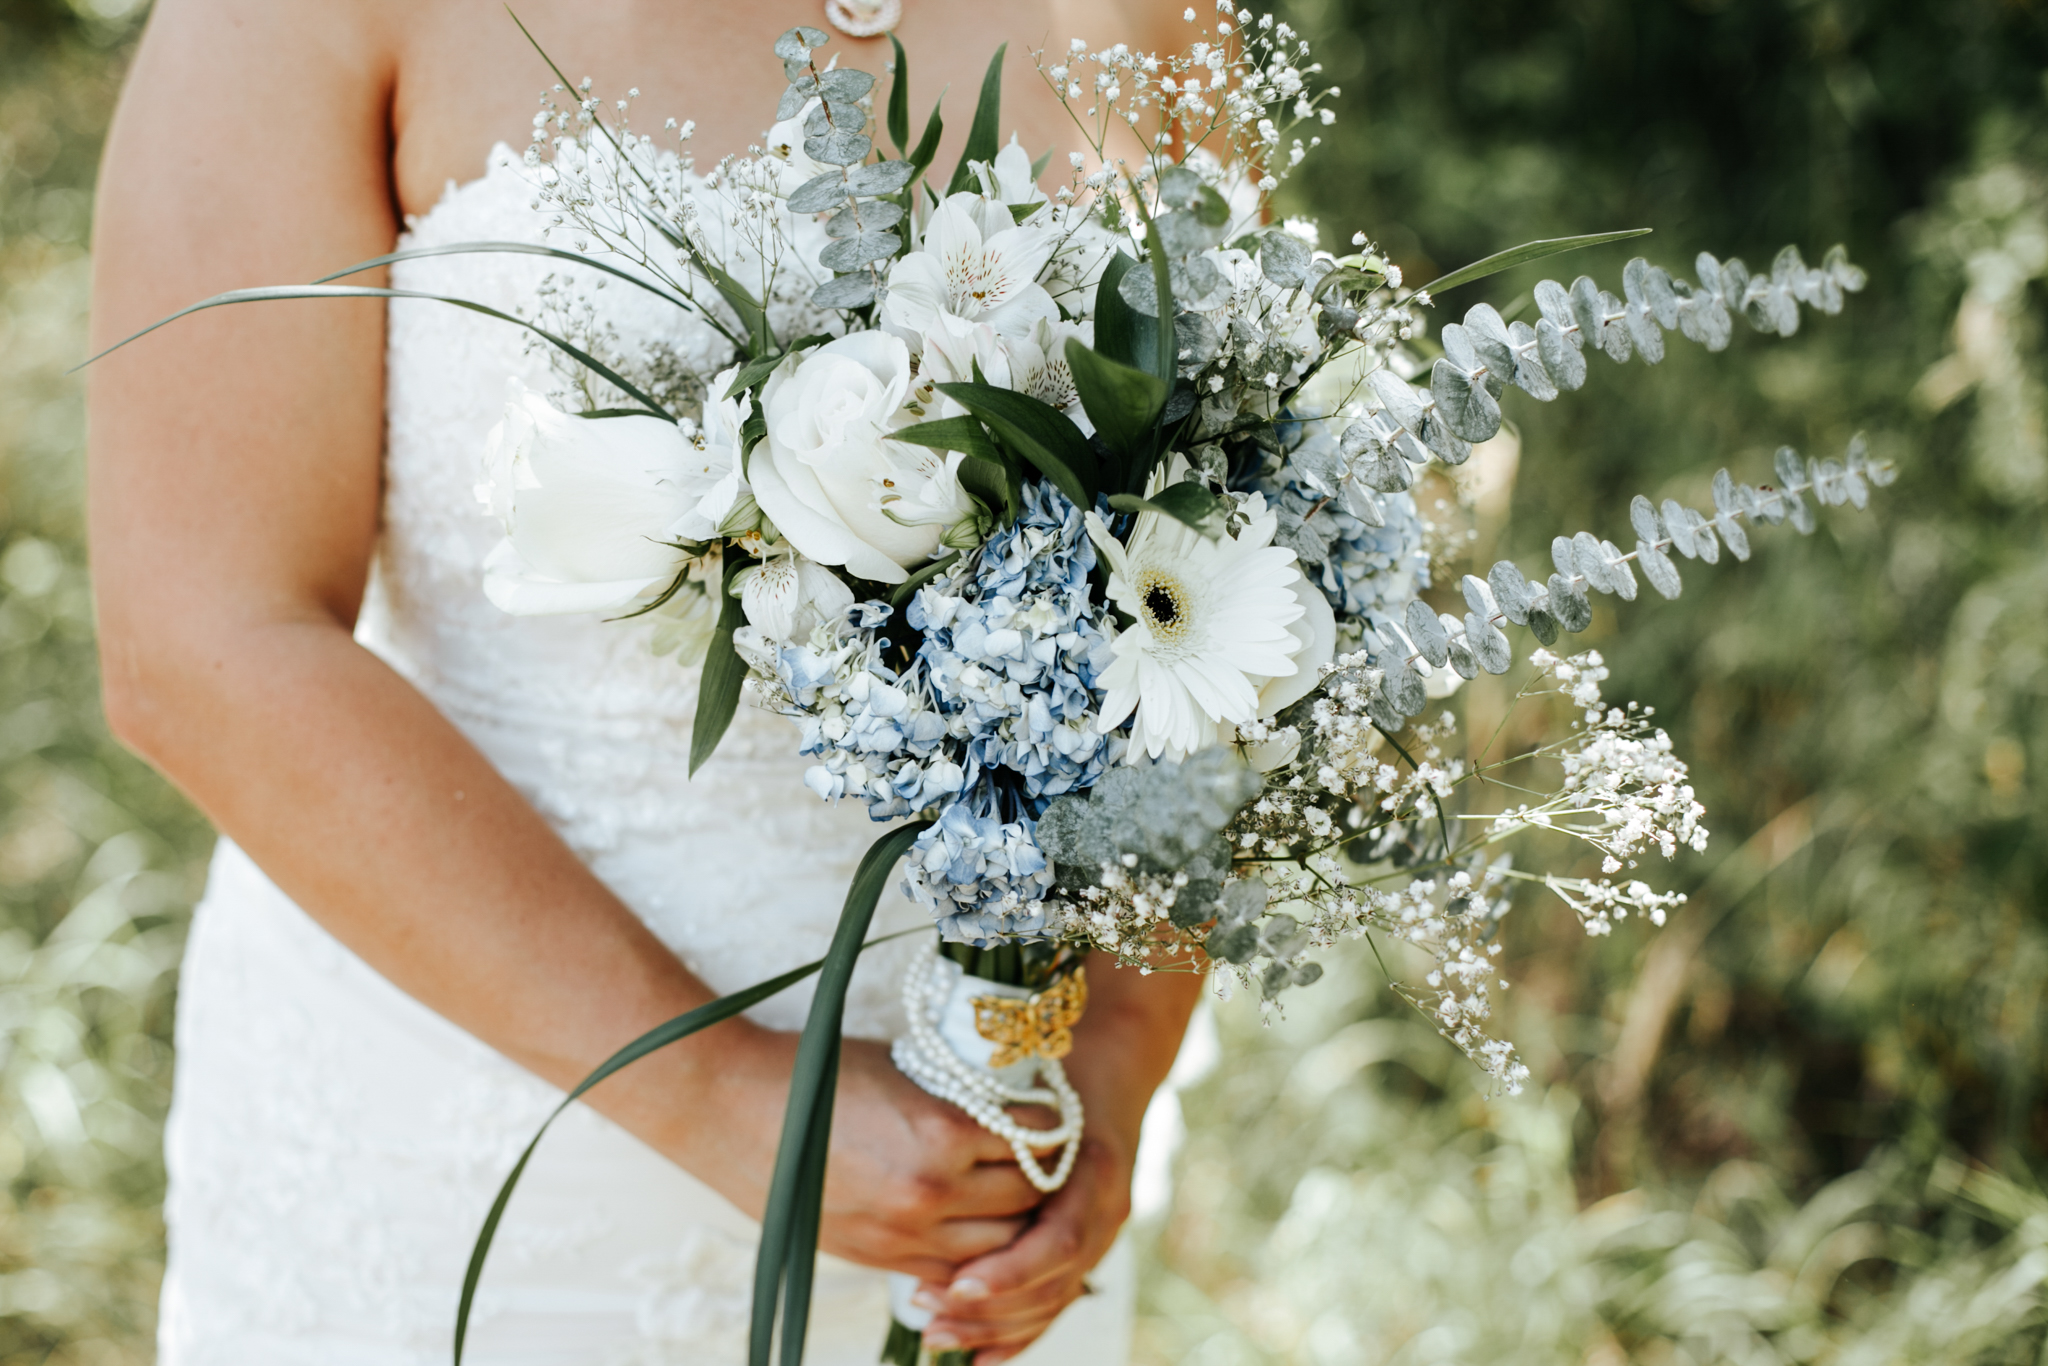 lethbridge-wedding-photographer-love-and-be-loved-photography-trent-danielle-galt-reception-picture-image-photo-110.jpg